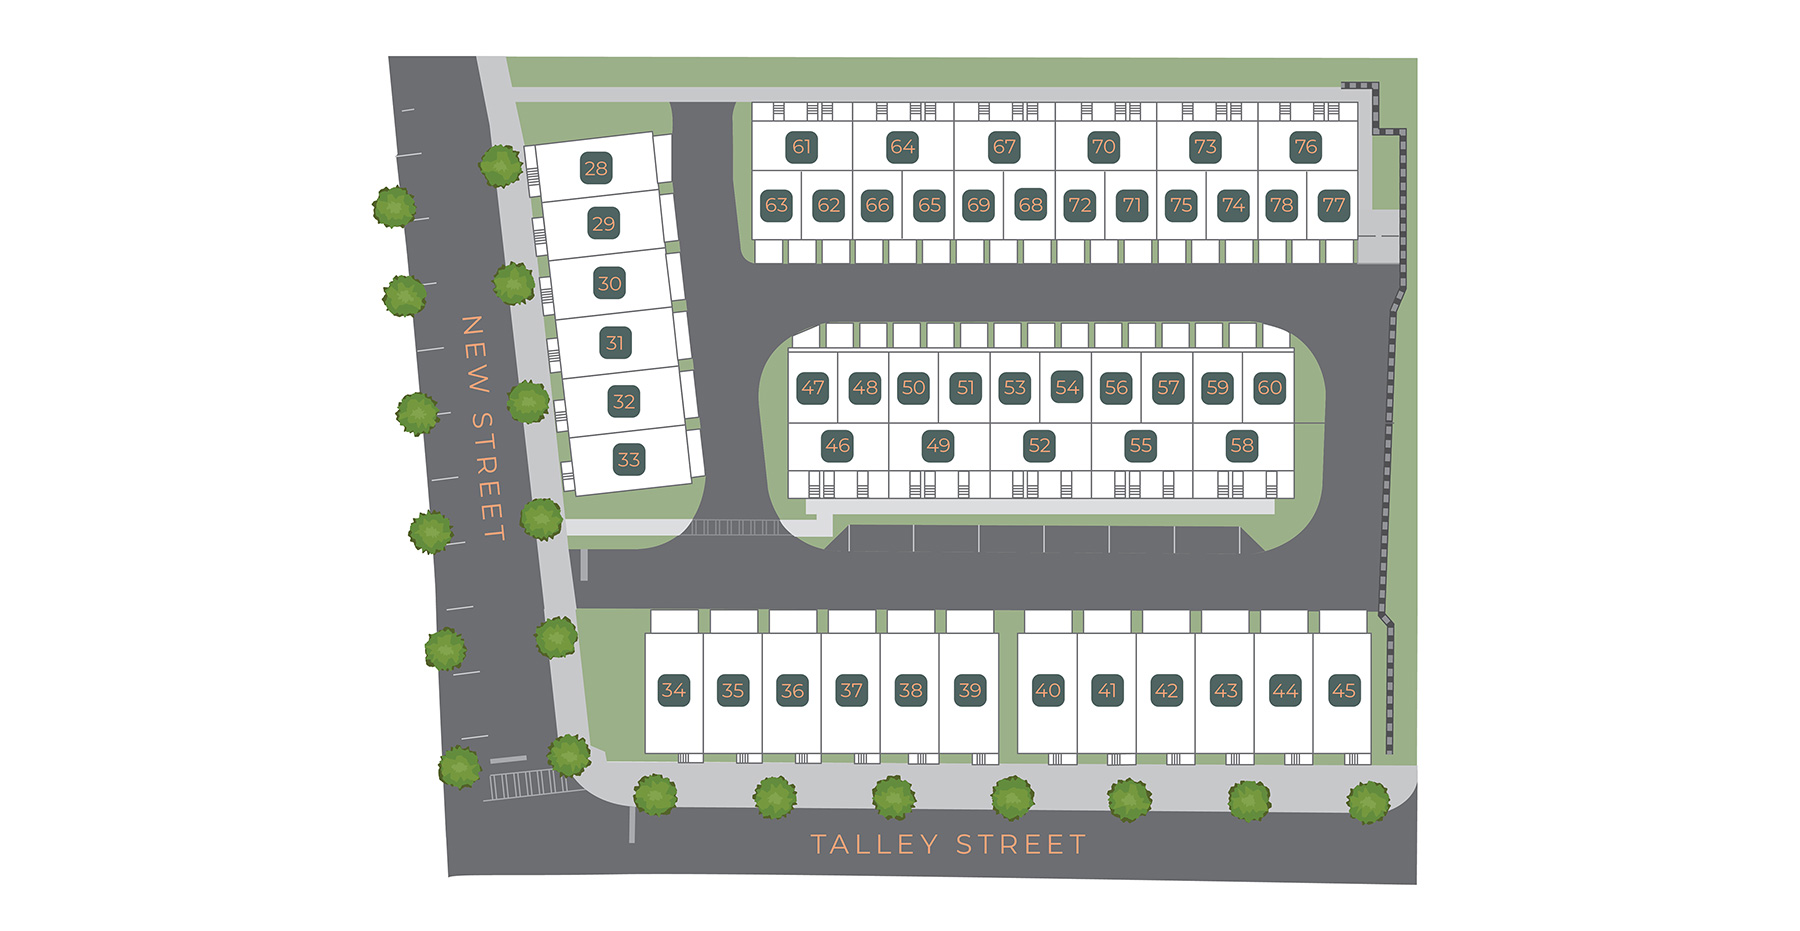 New Talley Station Site plan